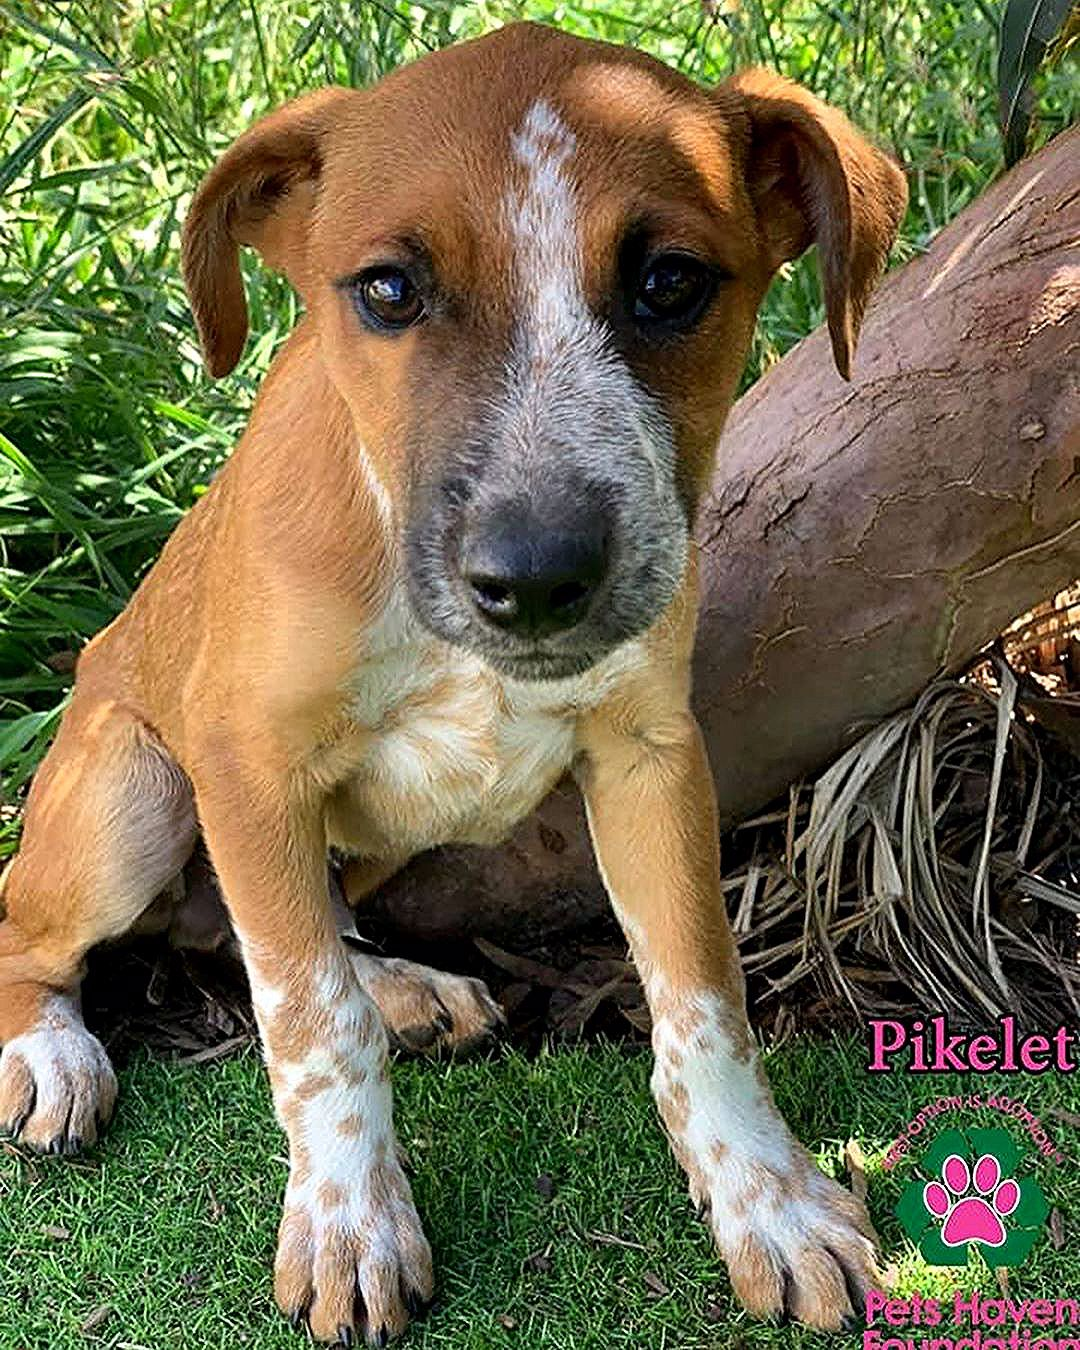 Meet Pikelet From 11am On Wednesday 11th December At Pets Haven Veterinary Clinic 302 304 Canterbury Rd Bayswater Nth In 2020 Australian Cattle Dog Pets Animals